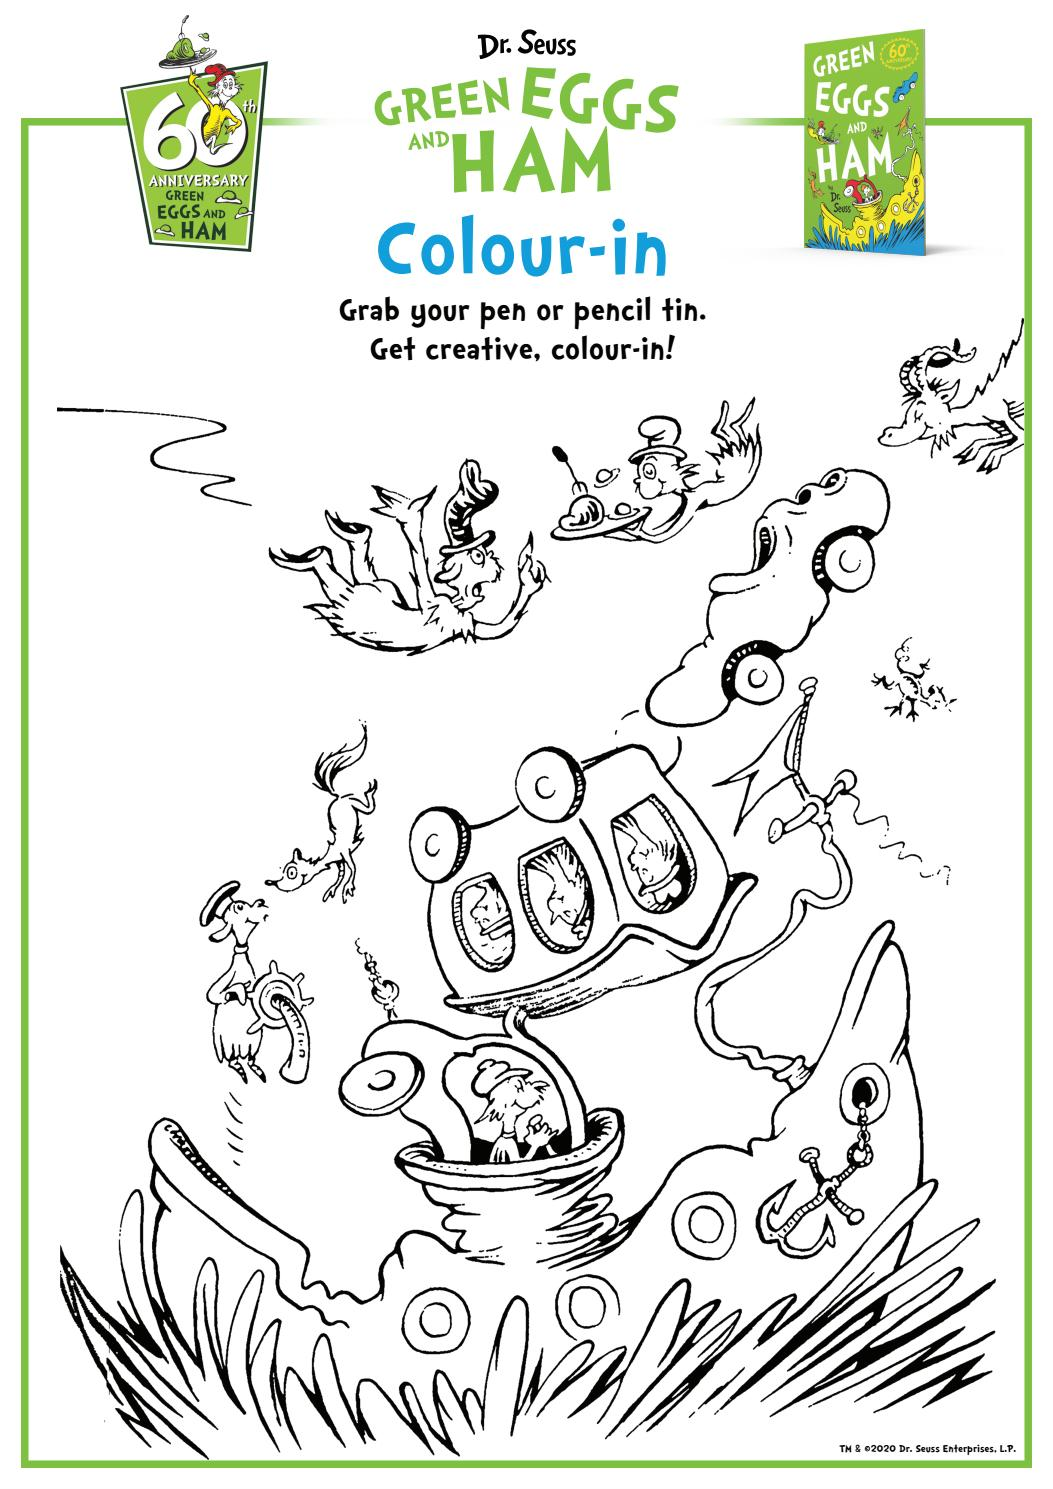 Green Eggs And Ham By Dr Seuss Colouring In By Harpercollinschildrens Issuu